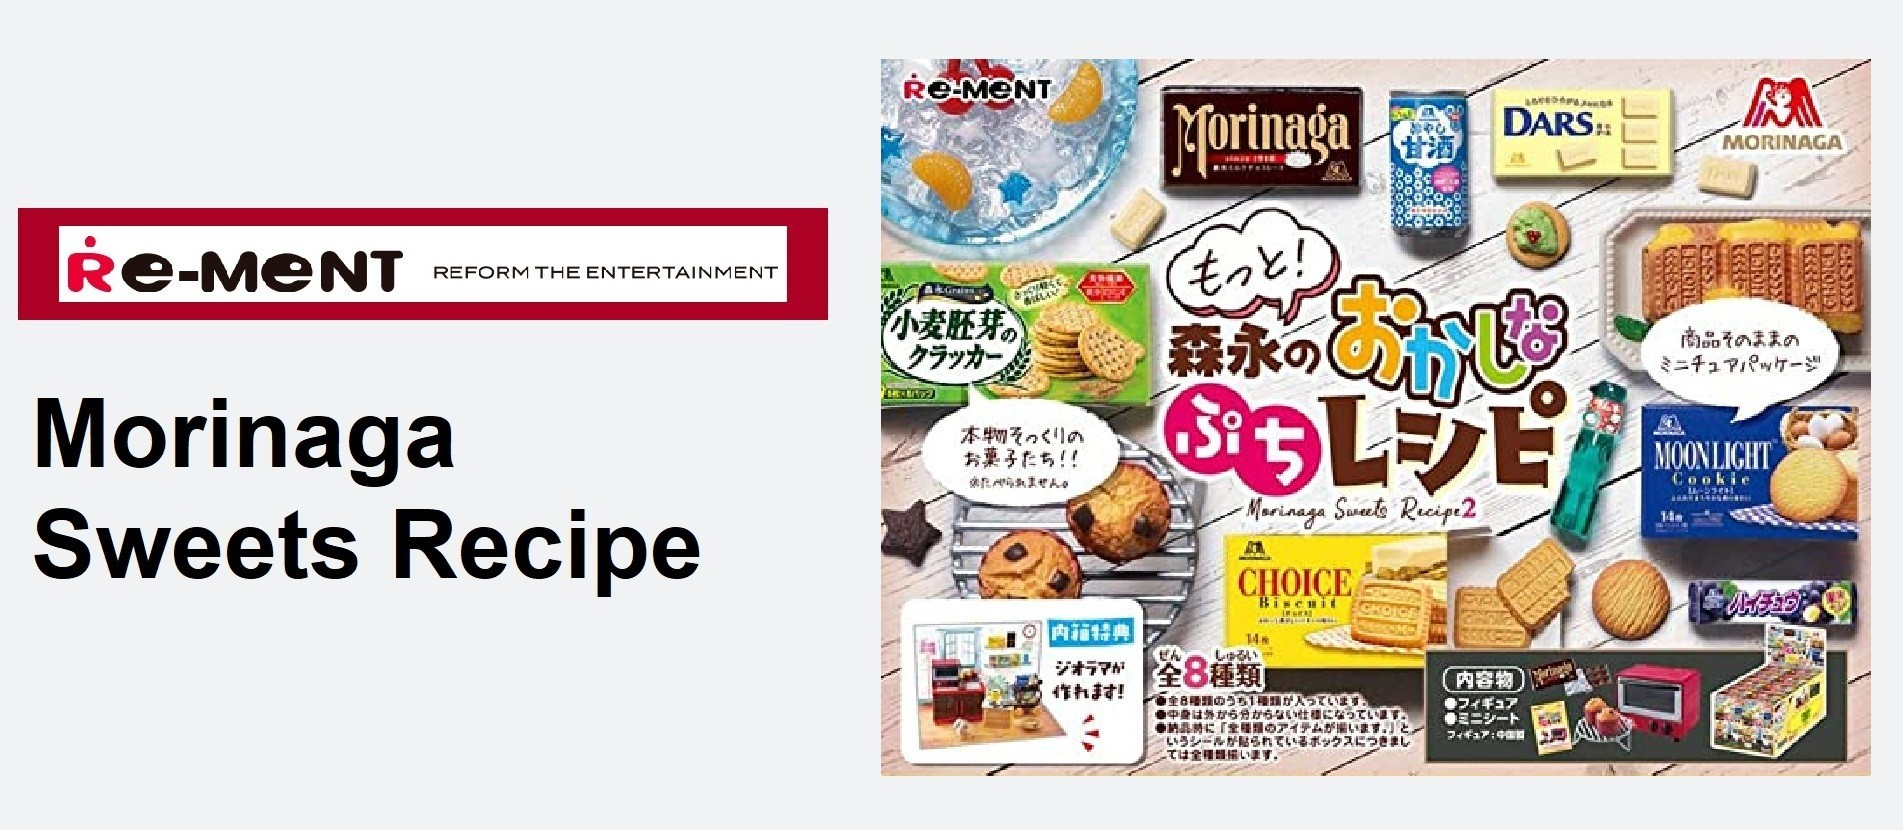 Rement Morinaga Sweets Recipe